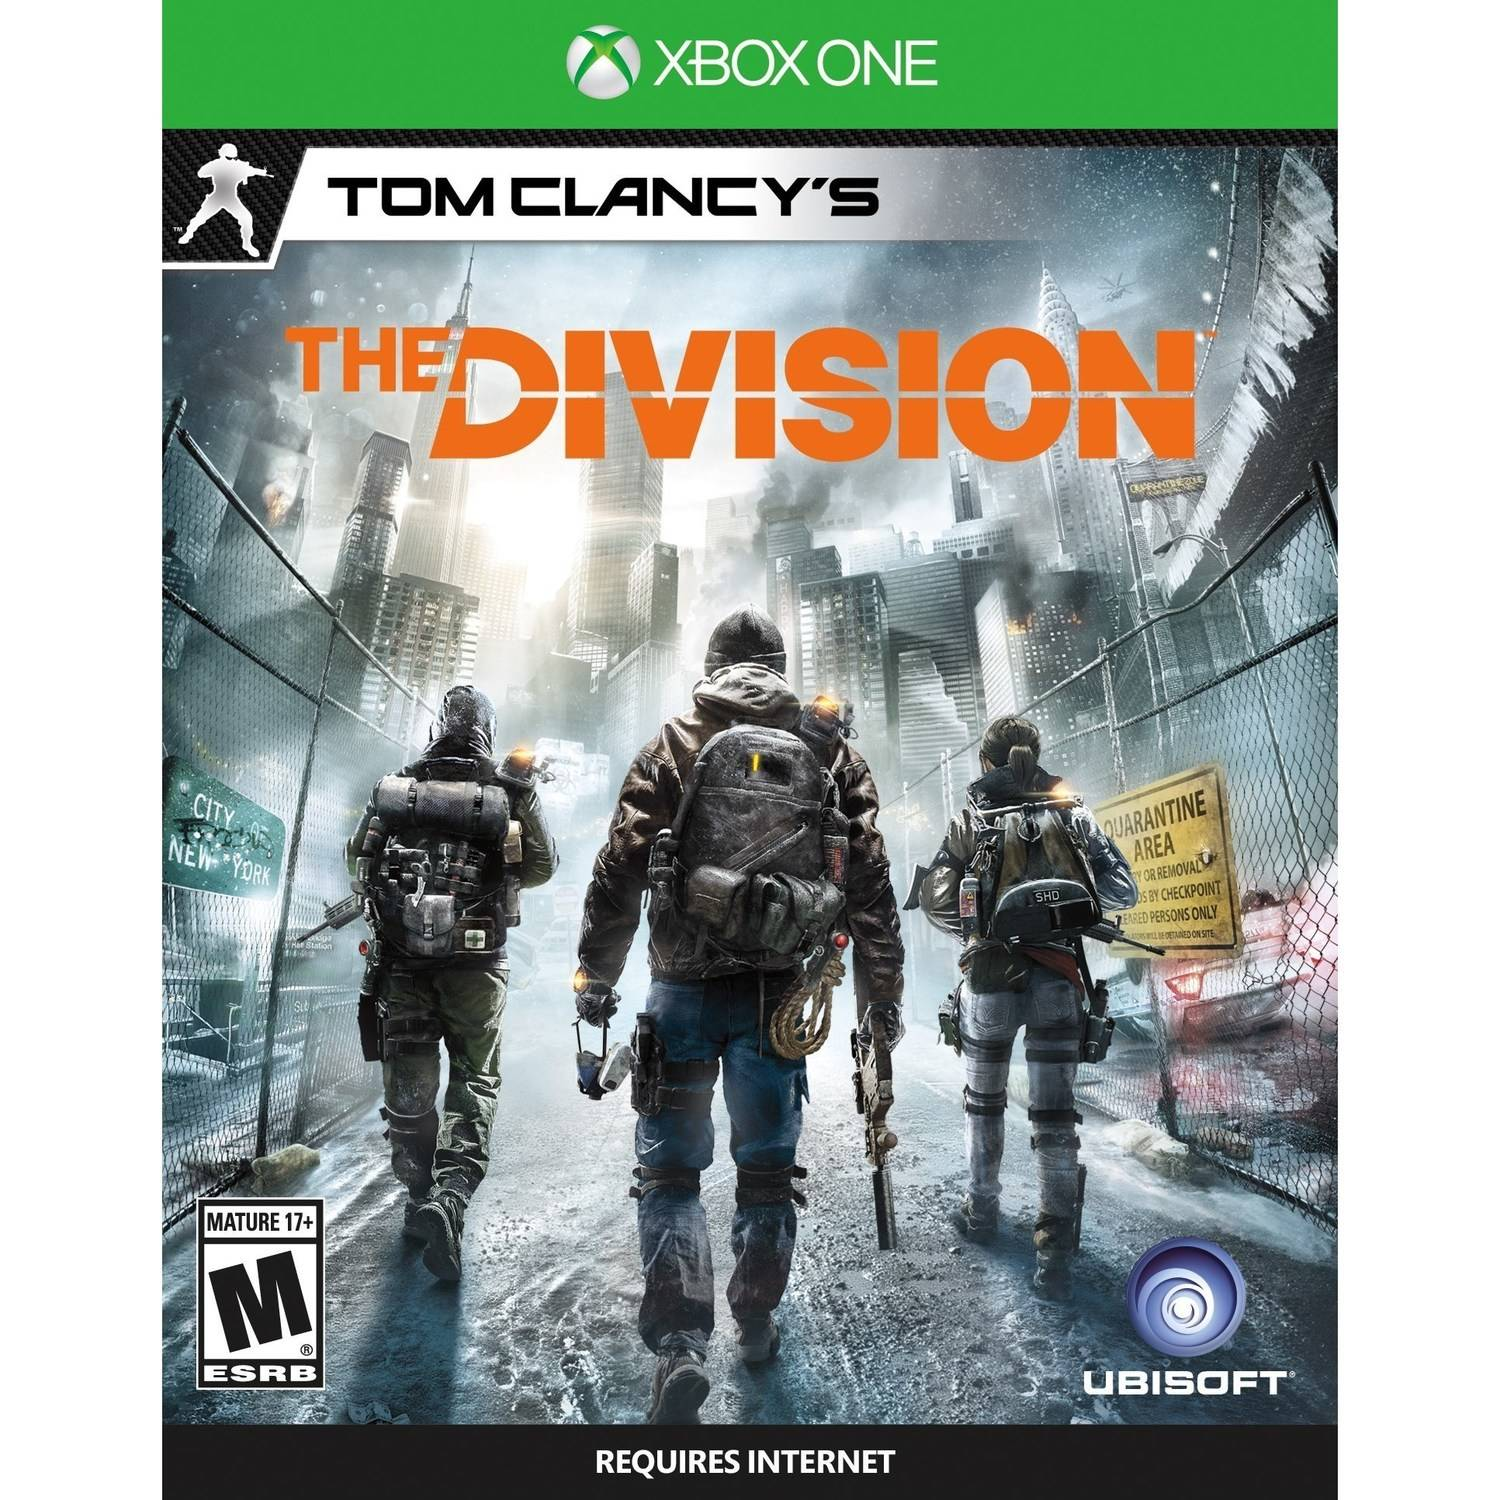 Tom Clancy's The Division - Pre-Owned (Xbox One)